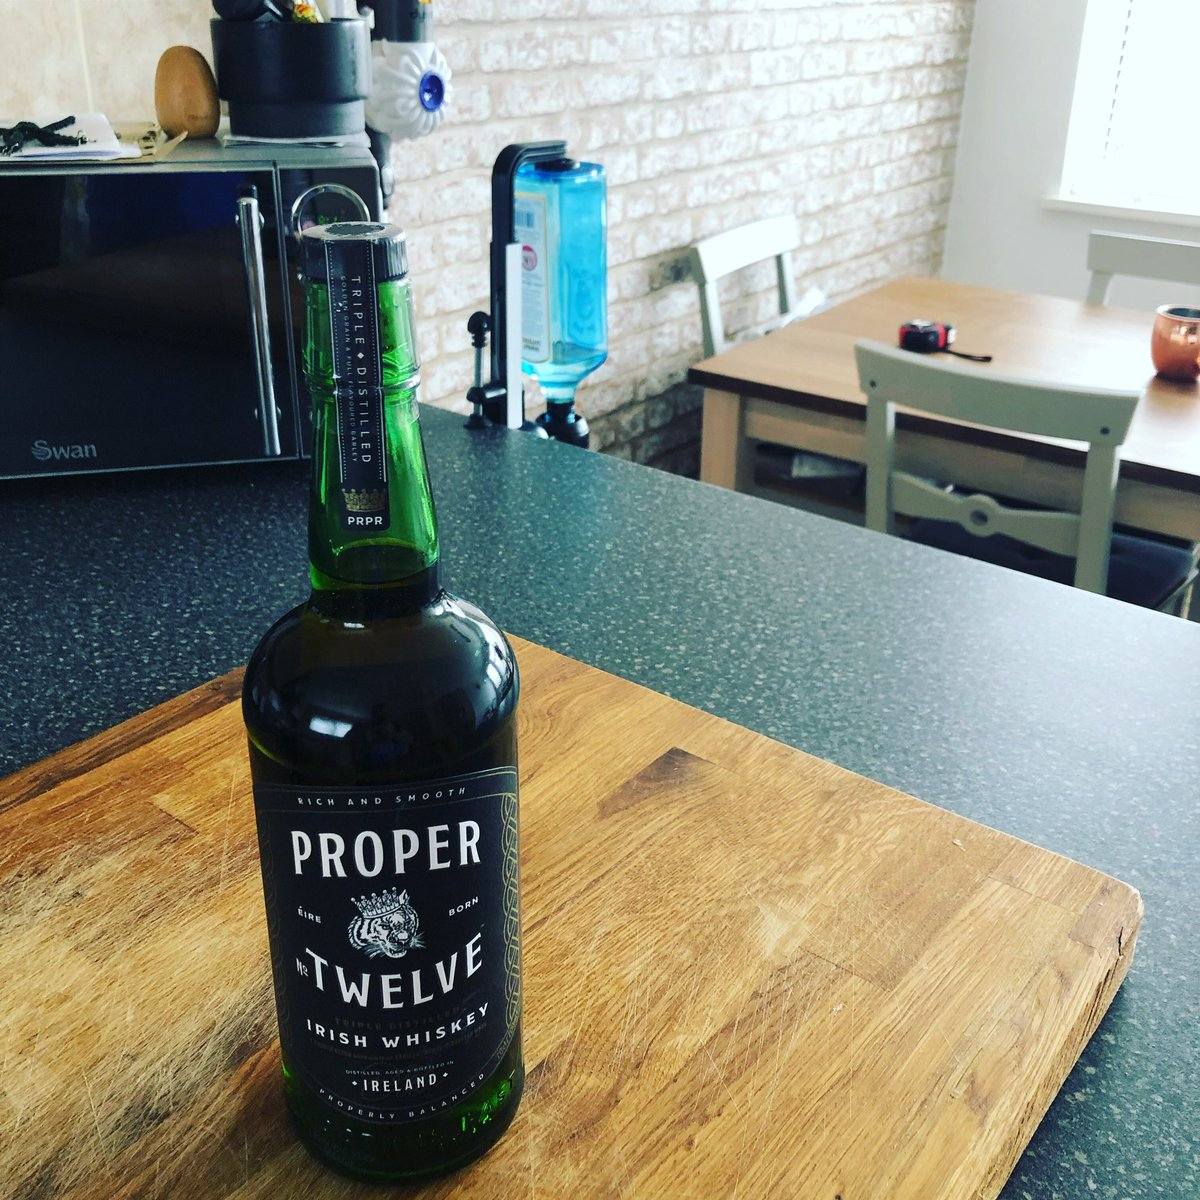 RT @ChrisBrownkop: Finally got my hands on a bottle. @ProperWhiskey @TheNotoriousMMA  #propertwelve https://t.co/O2S9e8TJR2